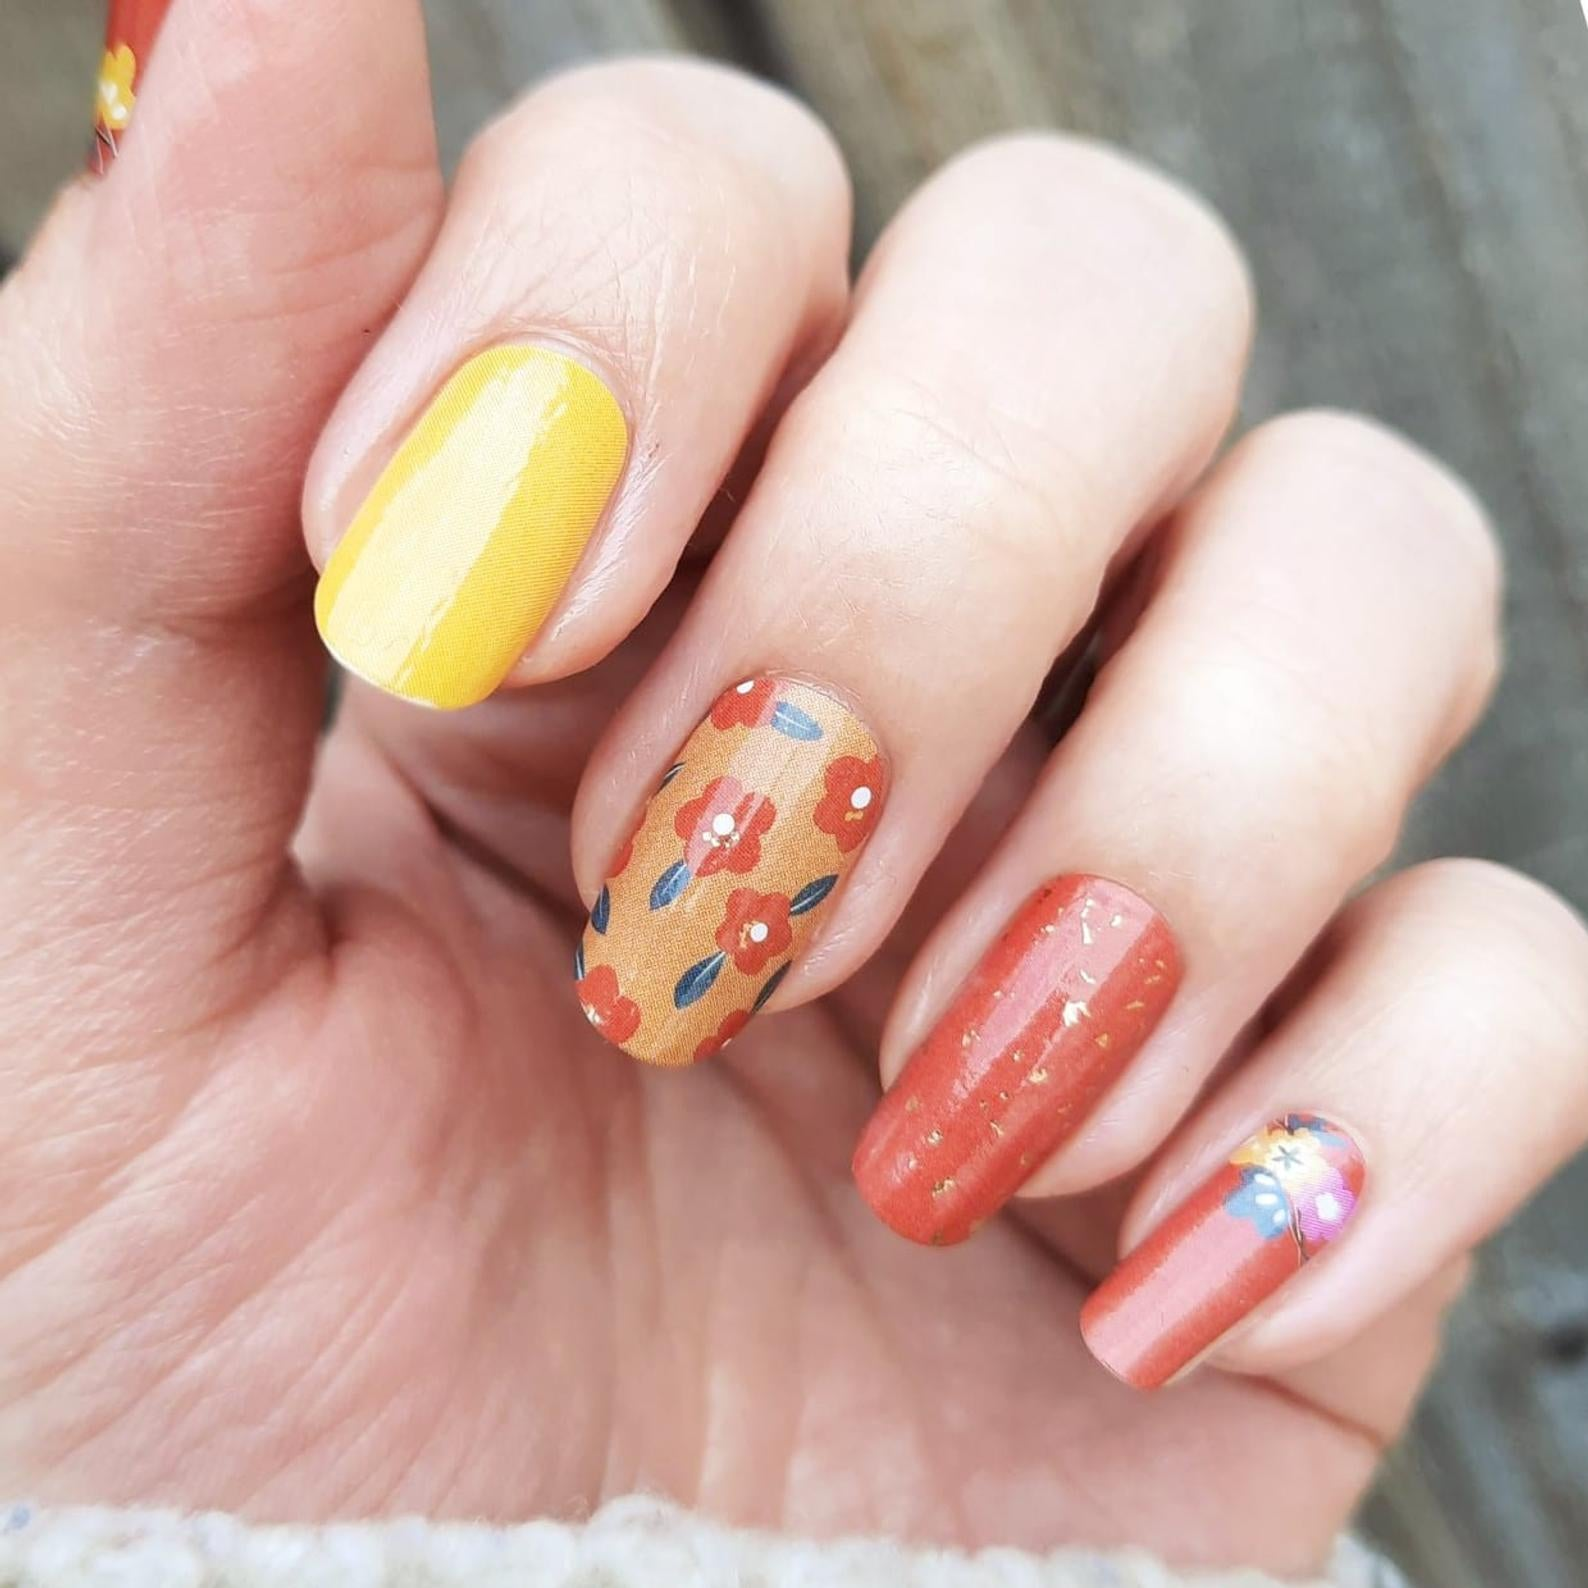 hand wearing nail wraps with a 70s mod style, like orange flowers, yellow, and deep orange